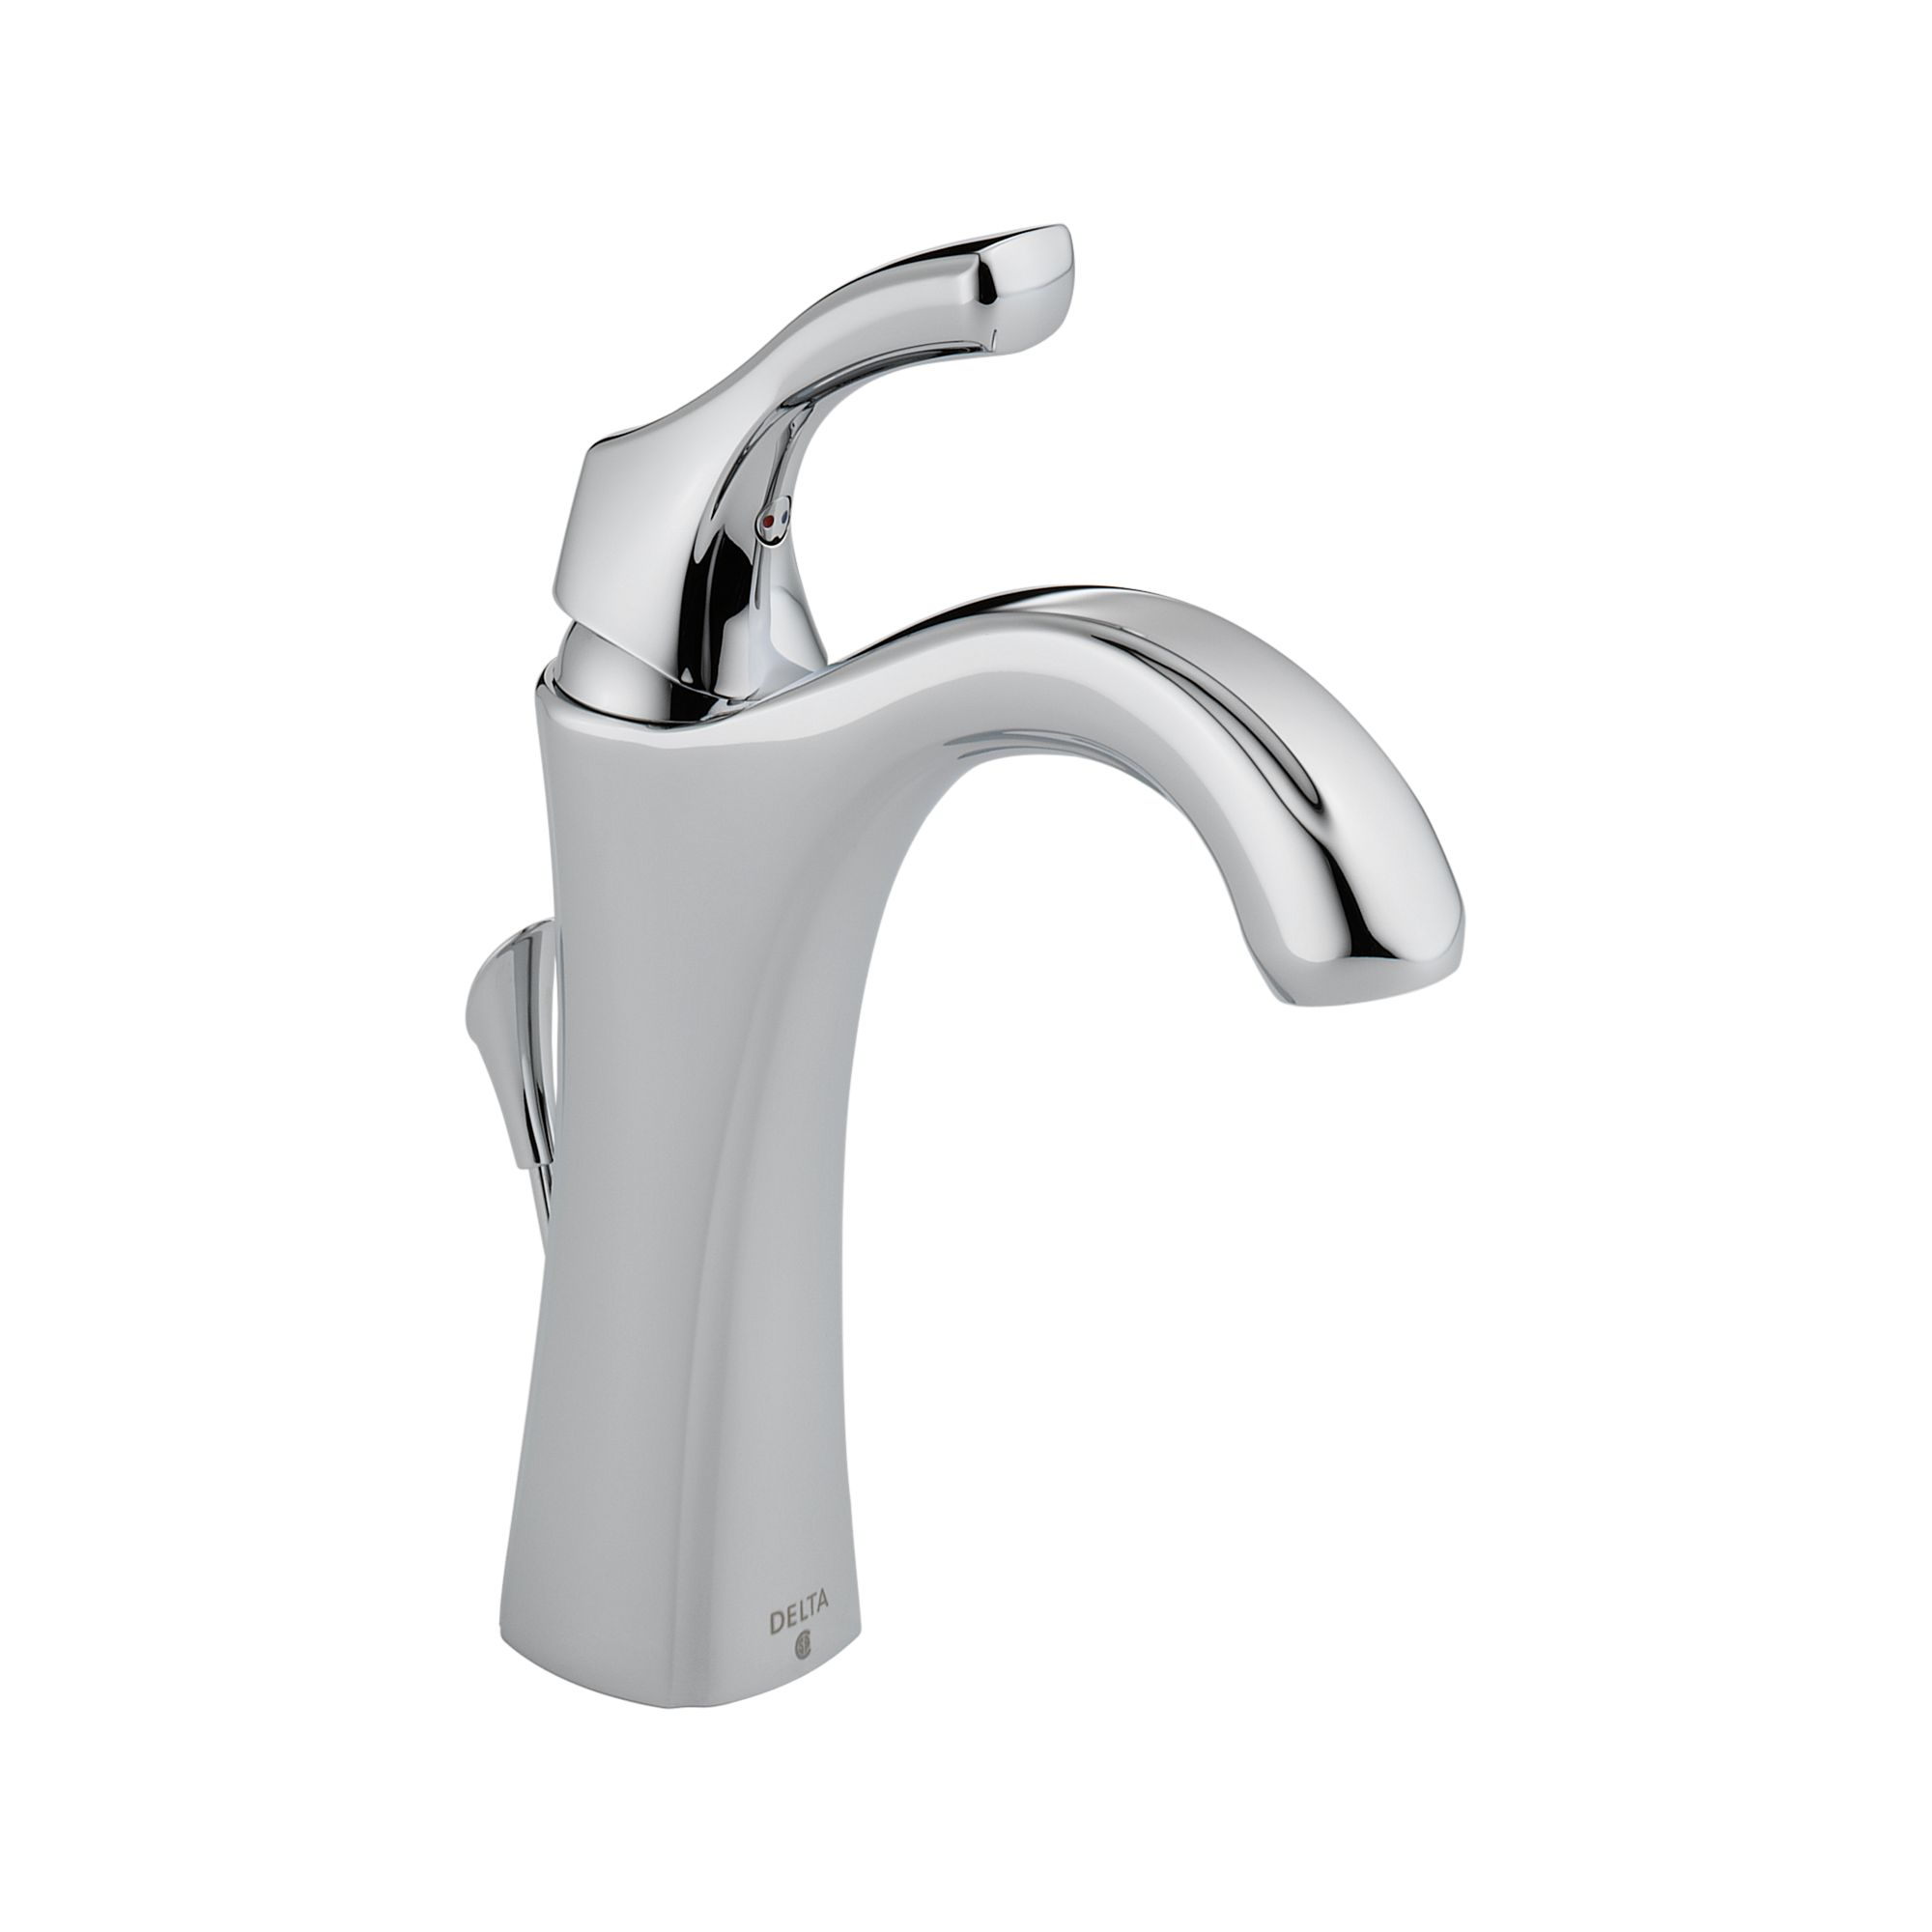 Stunning Faucet Direct With Single Handle In Simple Design For Bathroom Ideas